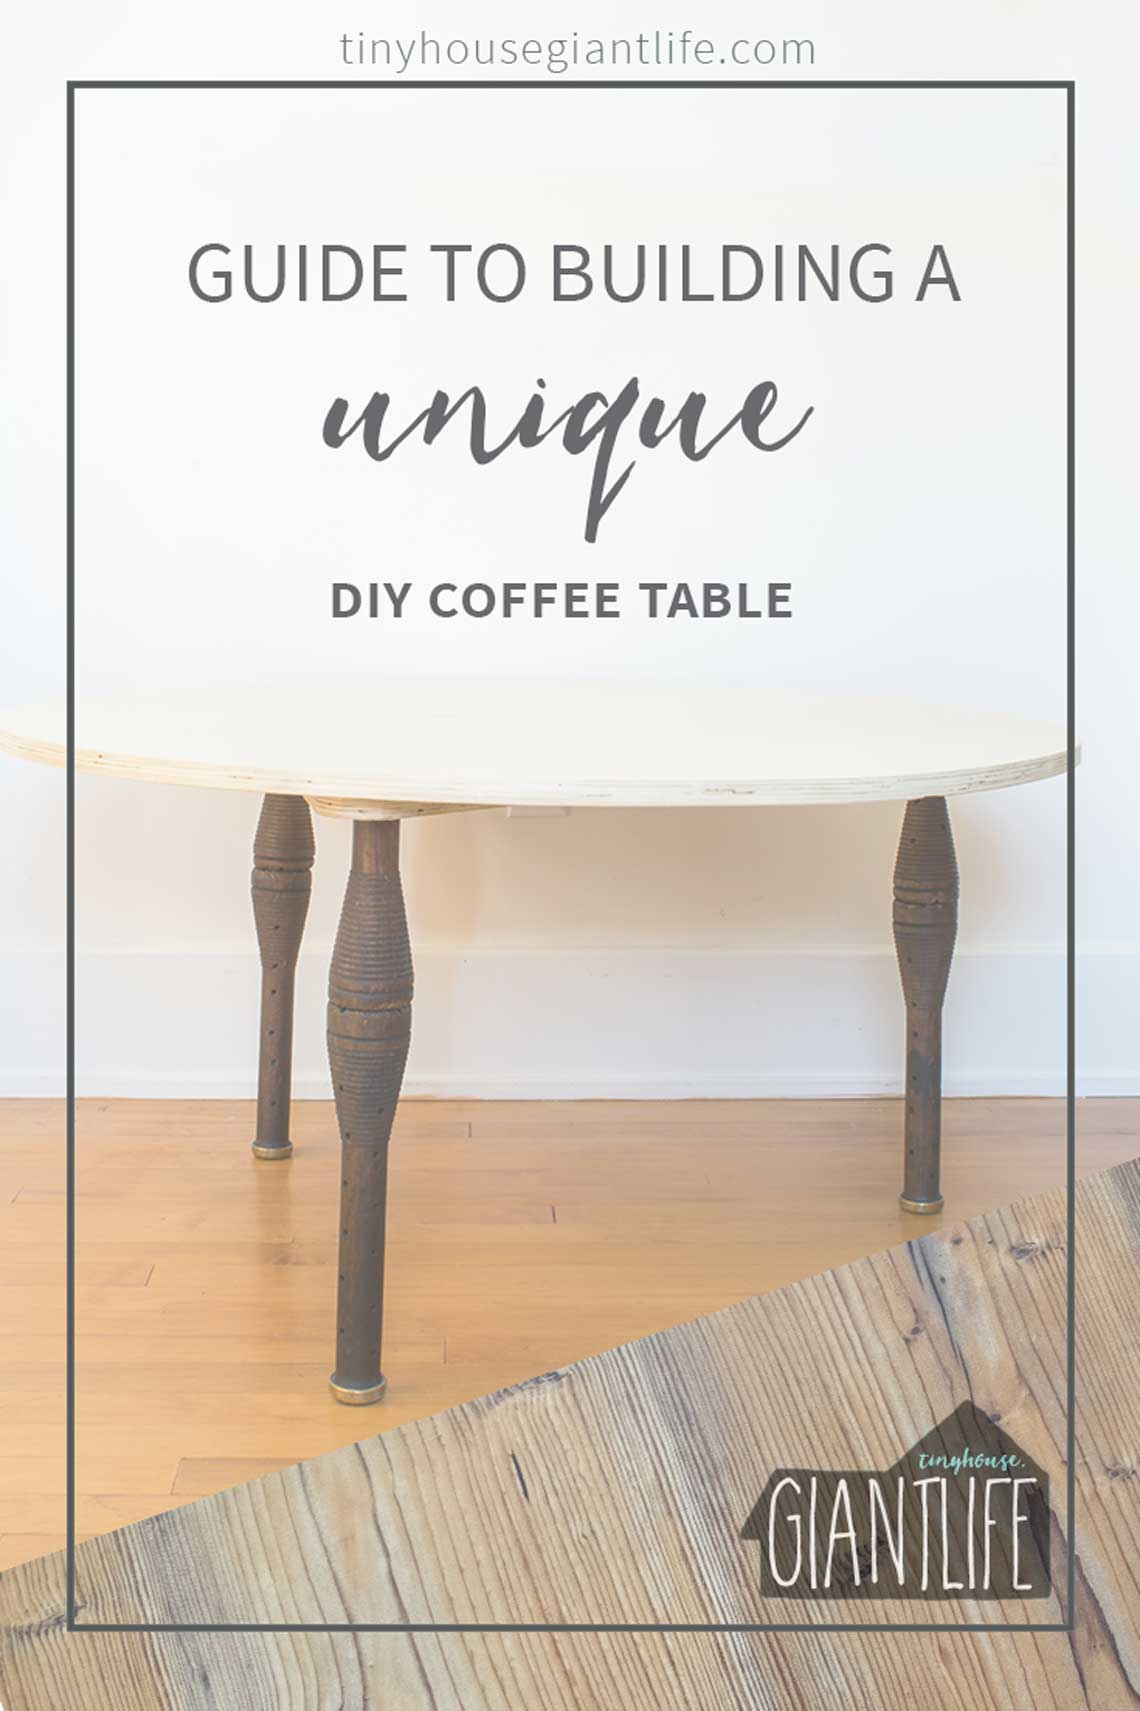 A Guide To Building A Unique DIY Coffee Table (Using IVinatge Industrial Spool's & A Plywood Top)